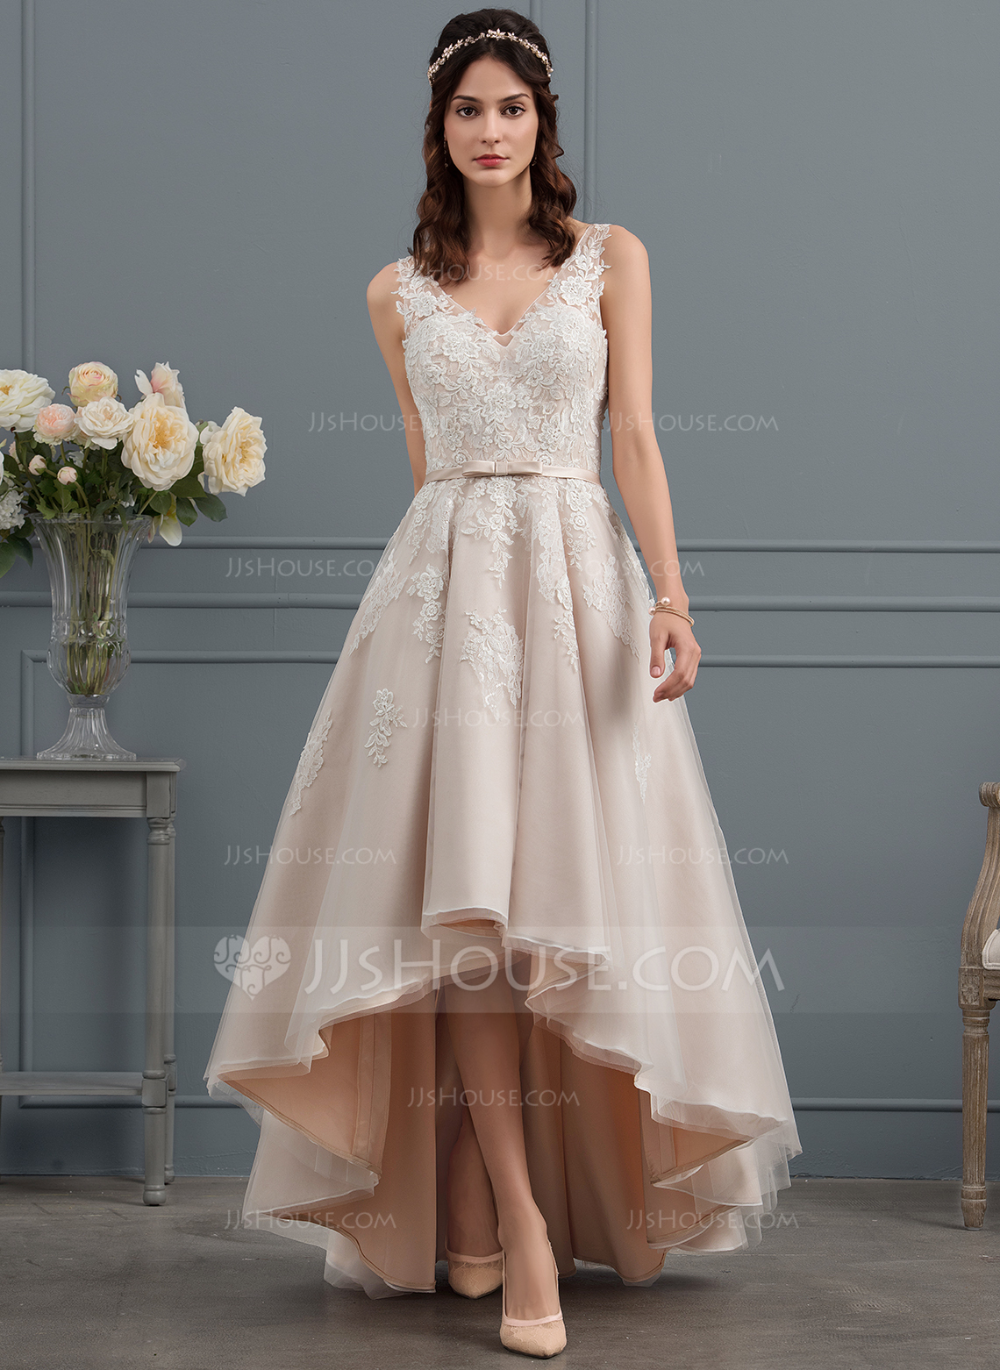 164 00 A Line V Neck Asymmetrical Tulle Lace Wedding Dress With Bow S Jj S House Bow Wedding Dress Tea Length Wedding Dress Plus Wedding Dresses [ 1370 x 1000 Pixel ]